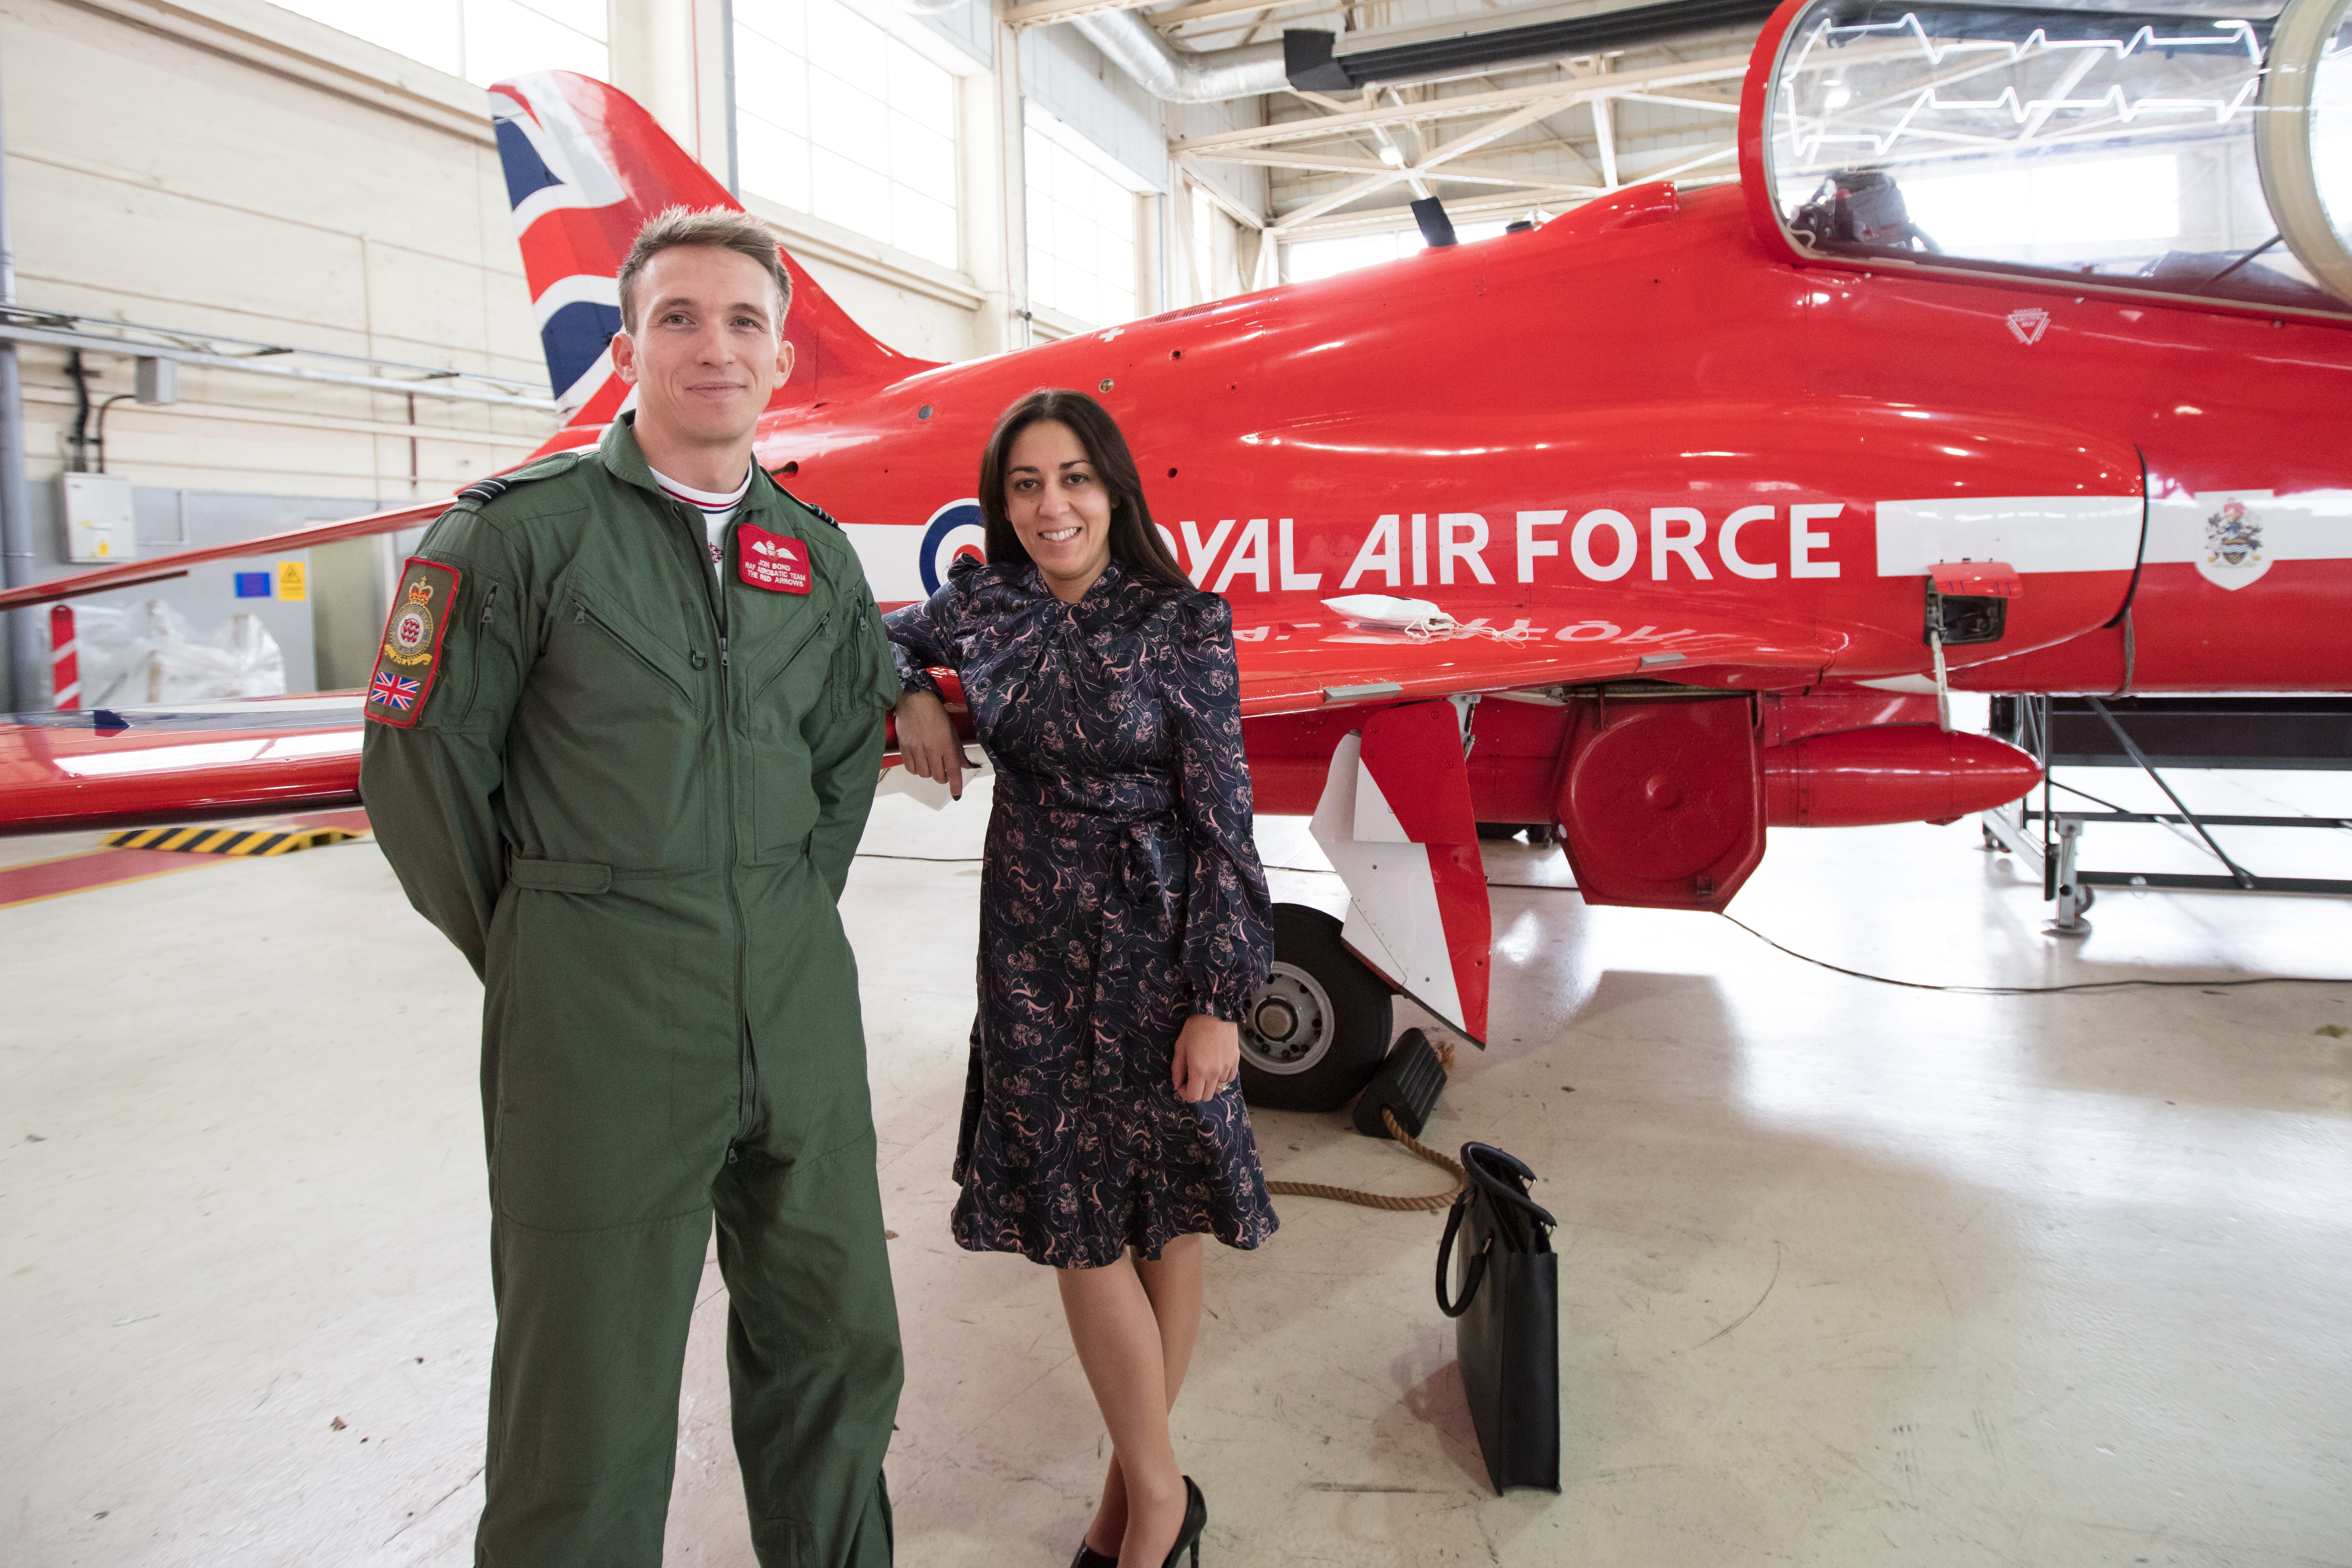 Lady stood next to gentleman in green flight suit with a RAF Red Arrow aeroplane in the background